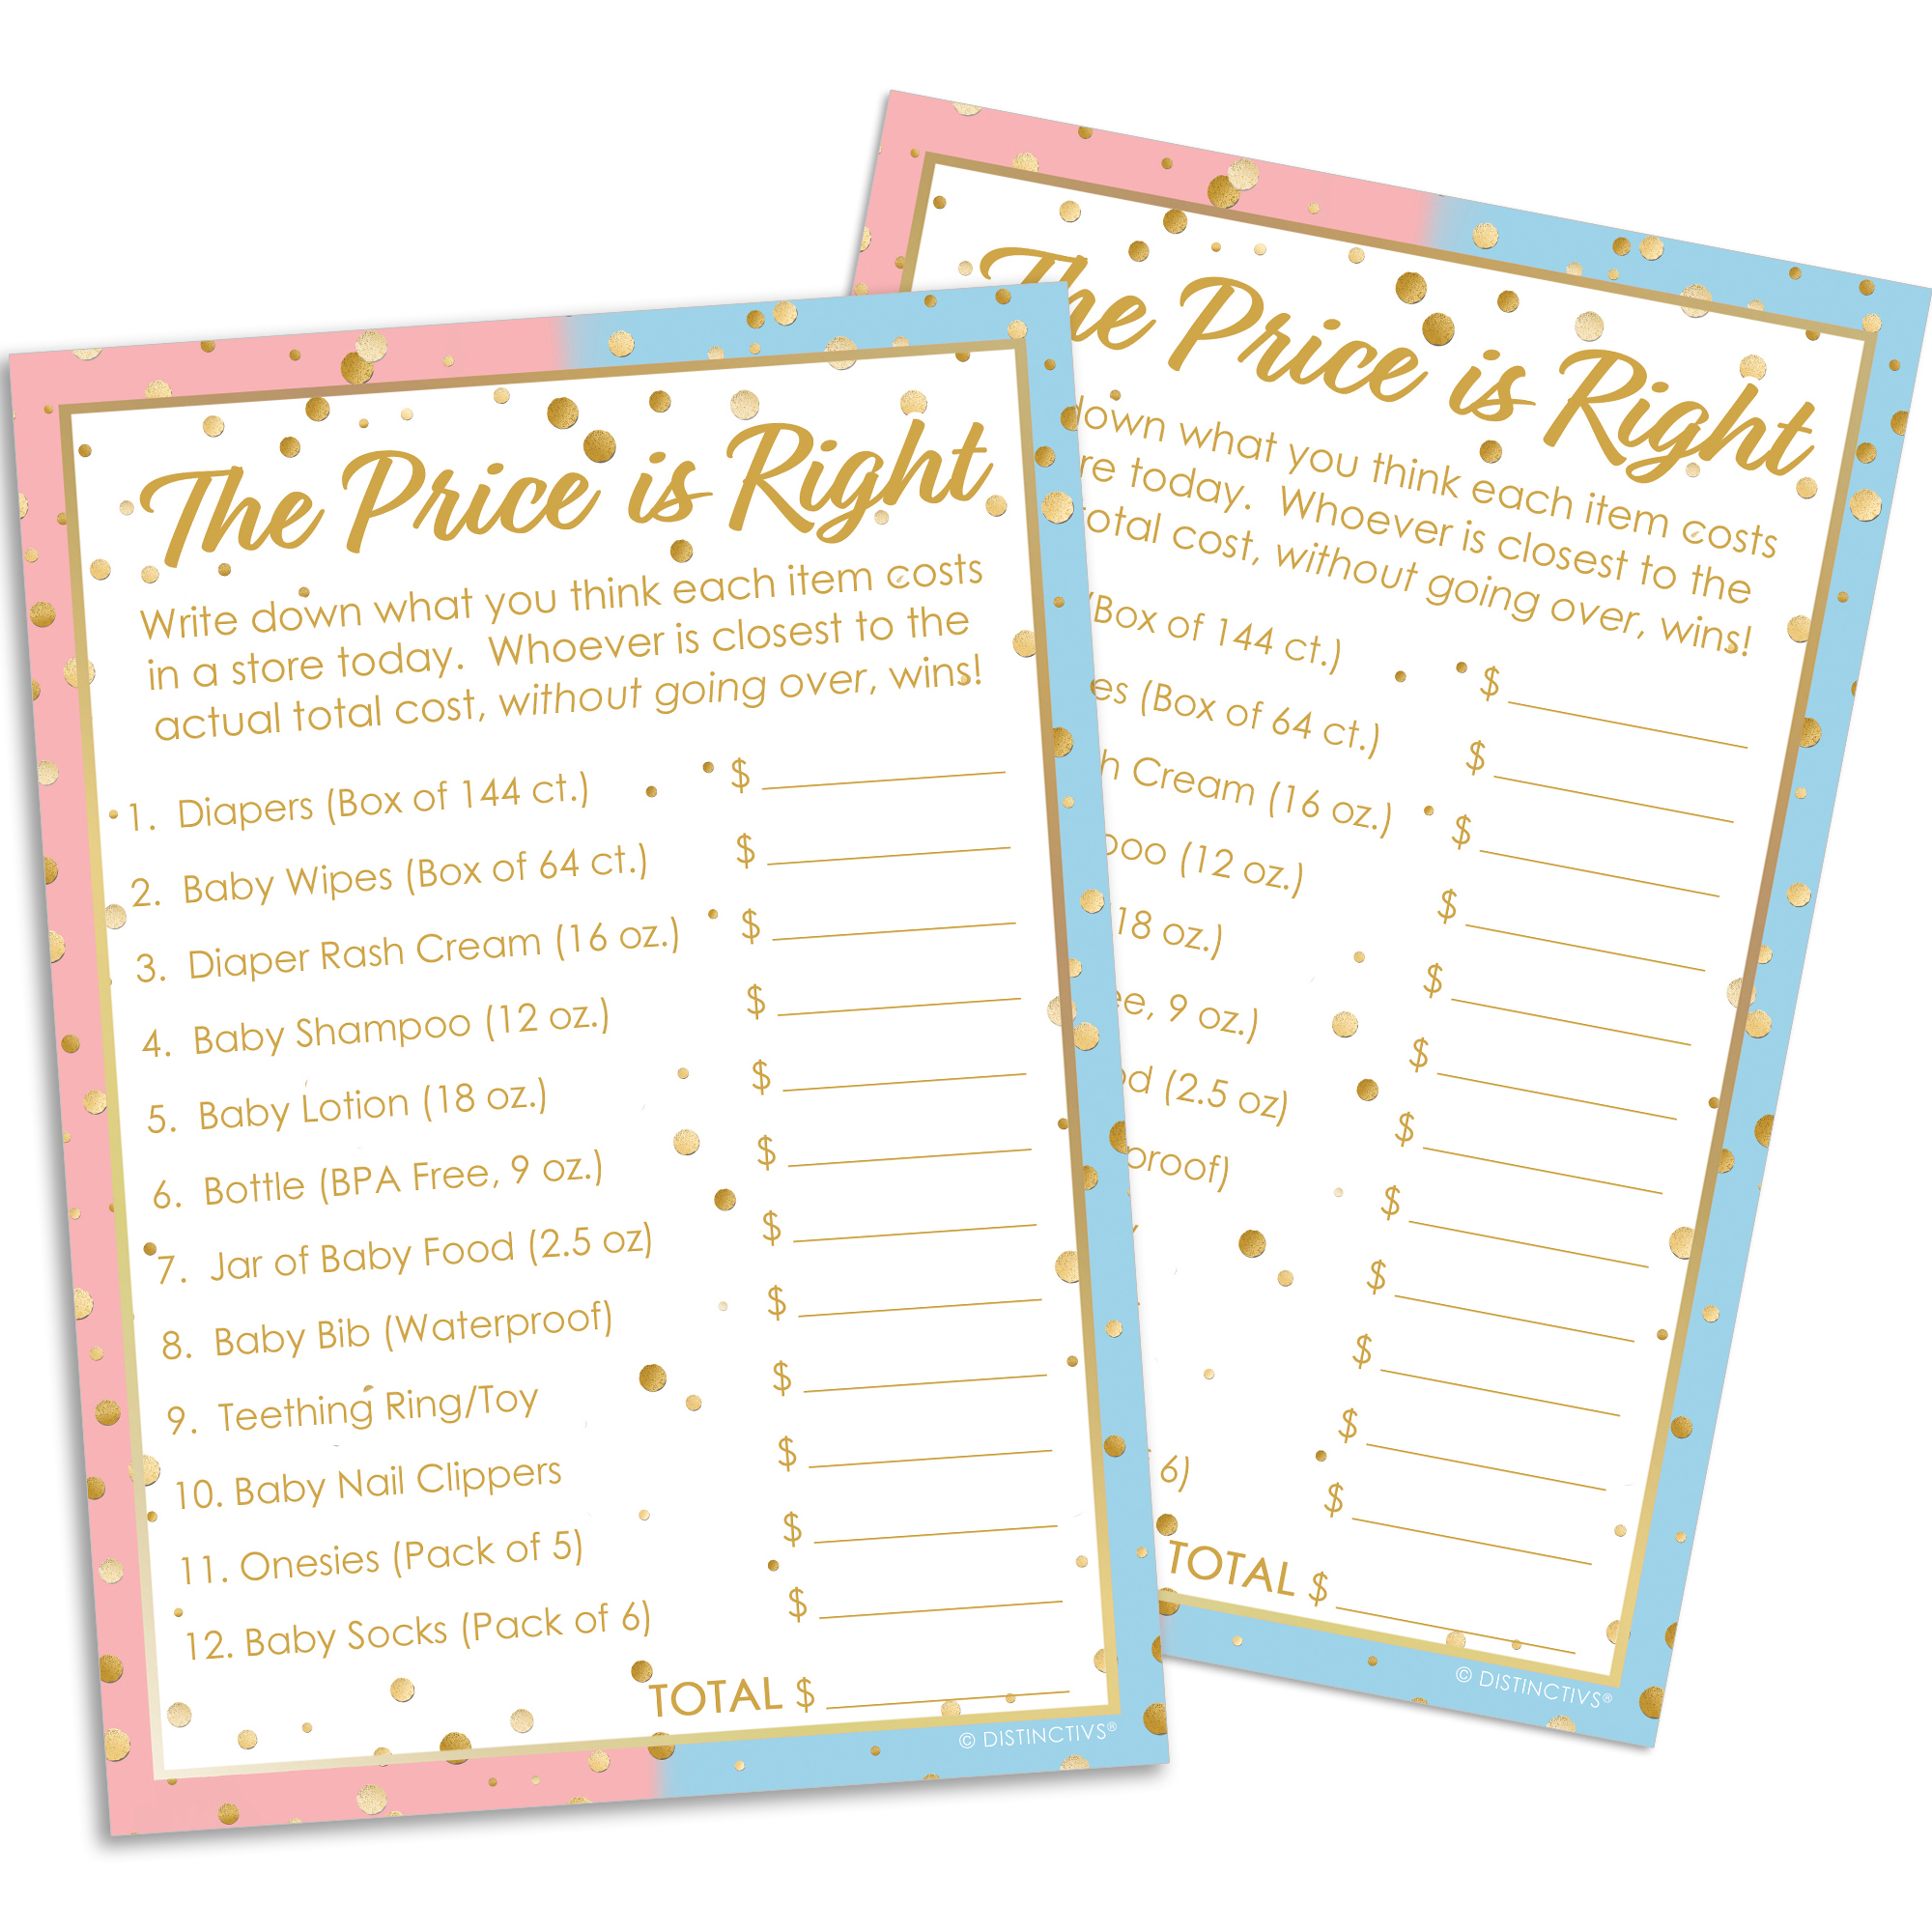 Gender Reveal Party Game Cards 20ct - The Price is Right Baby Shower Game - for up to 20 Guests